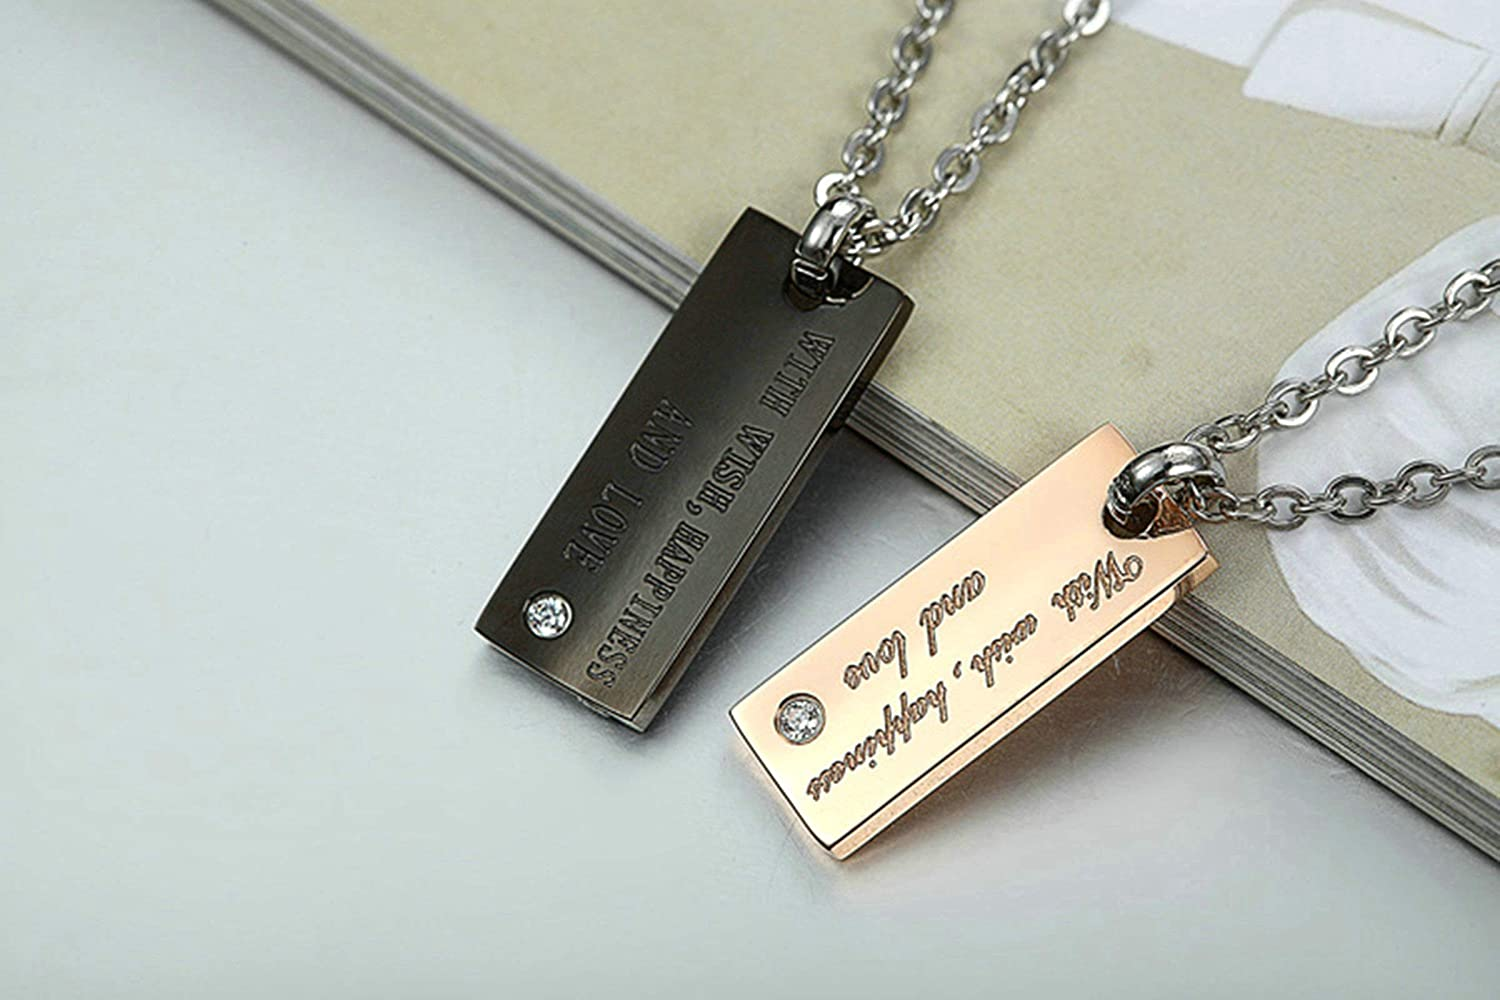 MoAndy Necklace for Couple Titanium Steel Pendant Necklaces Cz Rectangle Bar Engrave with Wishes Happiness and Love